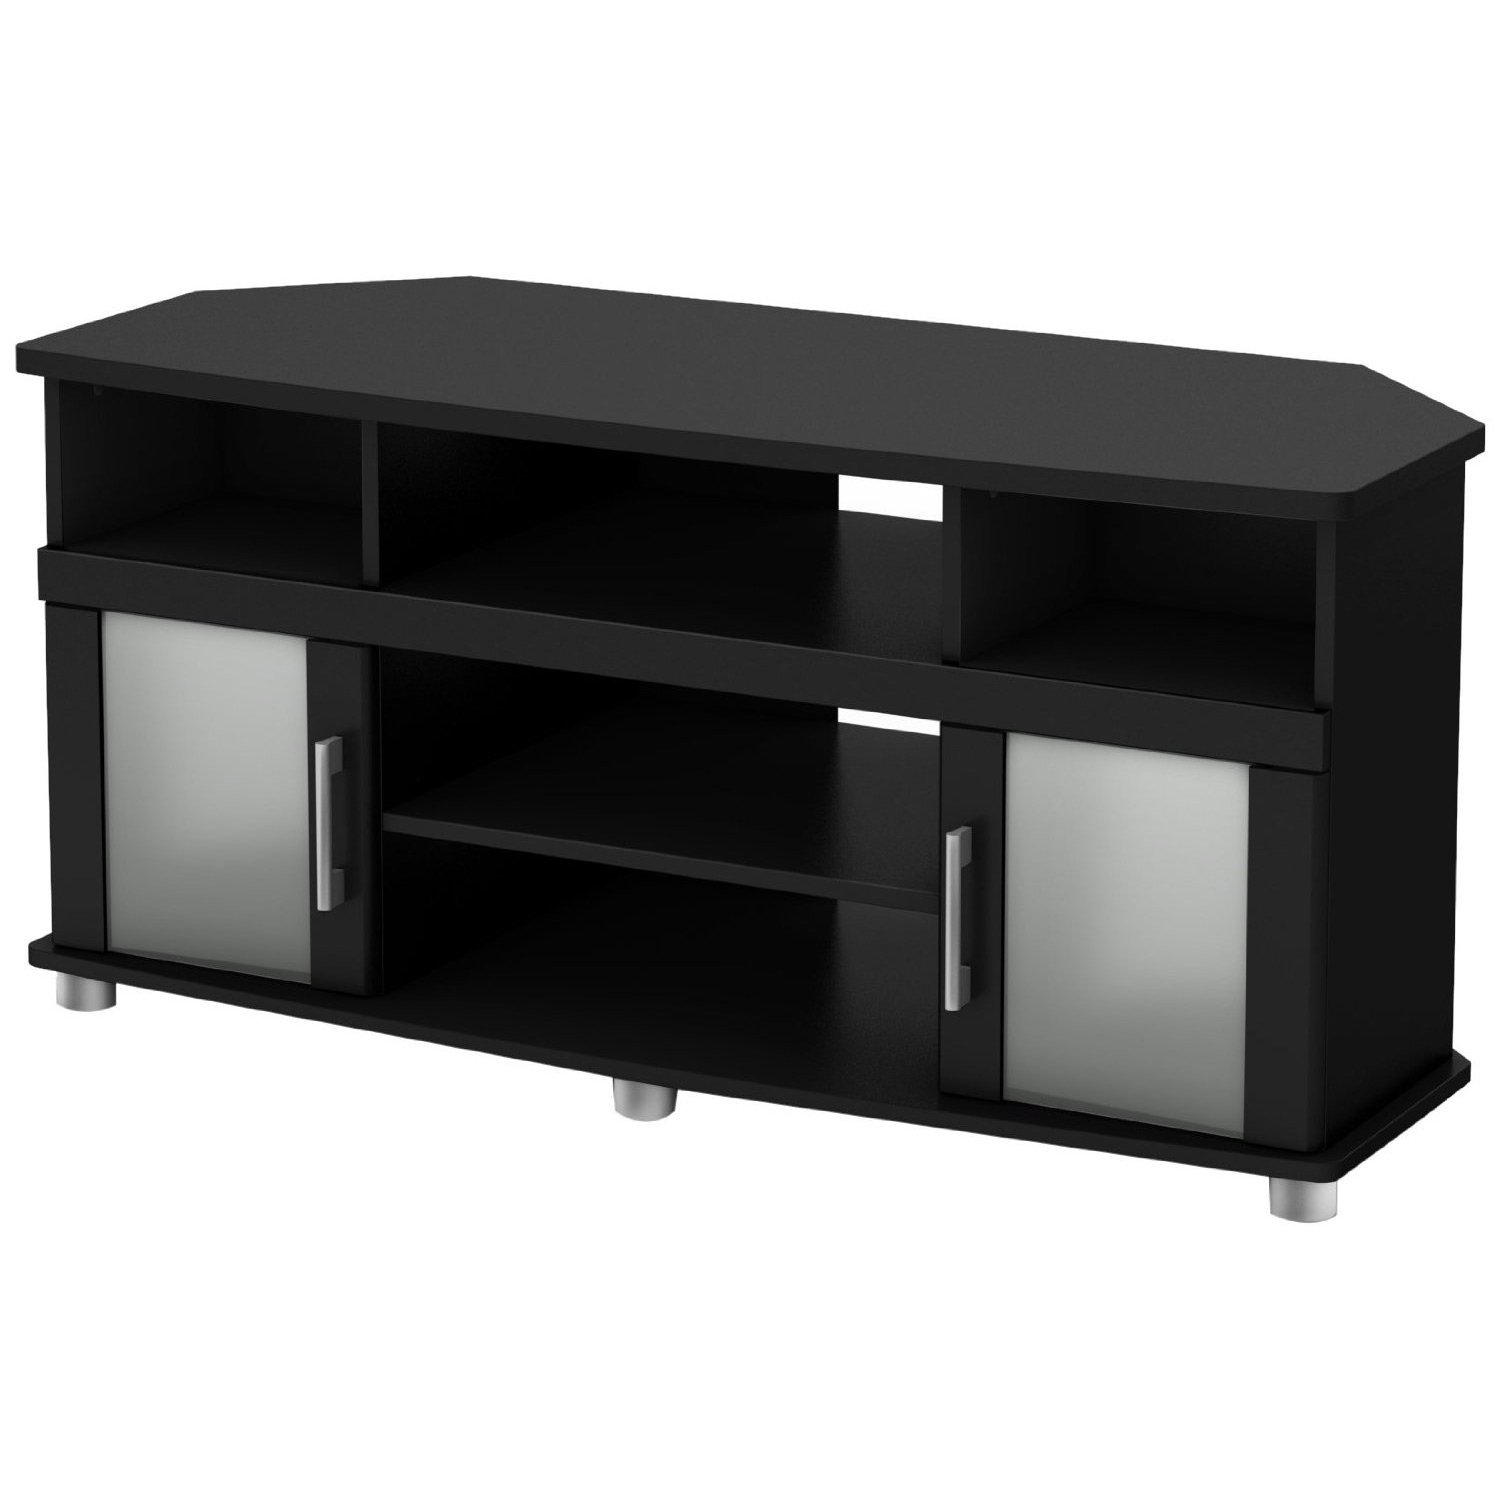 Black Corner Tv Stand With Frosted Glass Doors Black Corner Tv Stand Corner Tv Frosted Glass Door